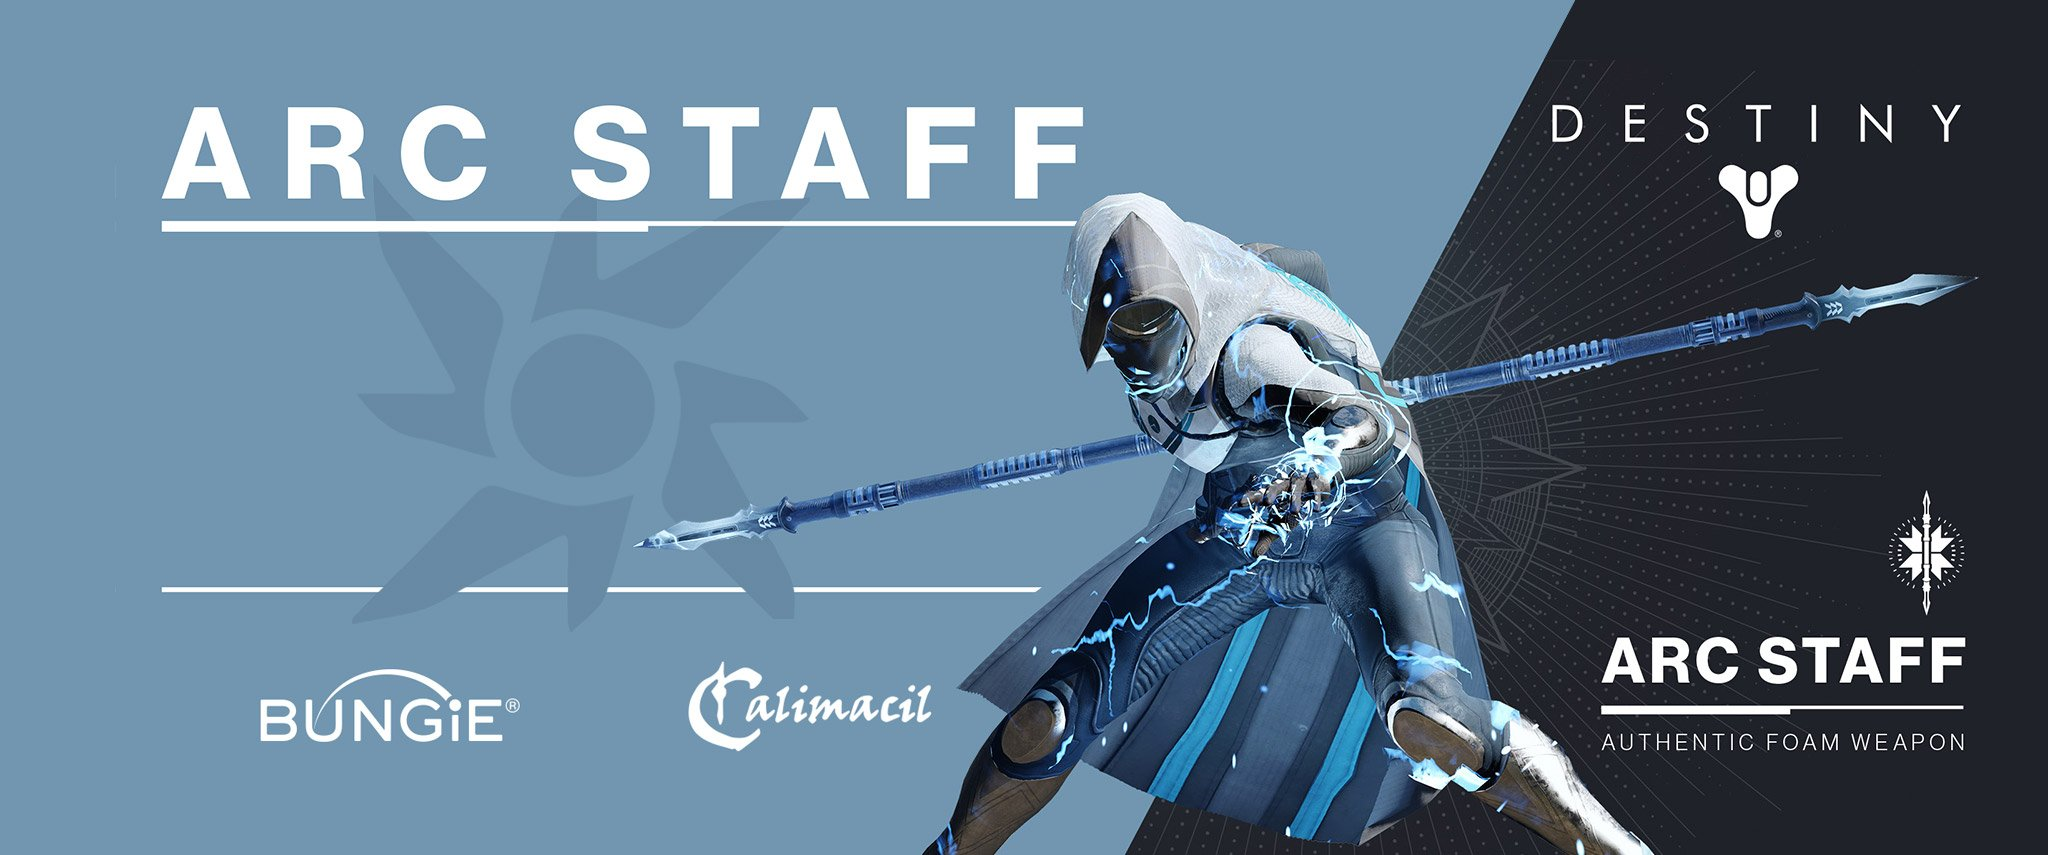 Destiny Arc Staff